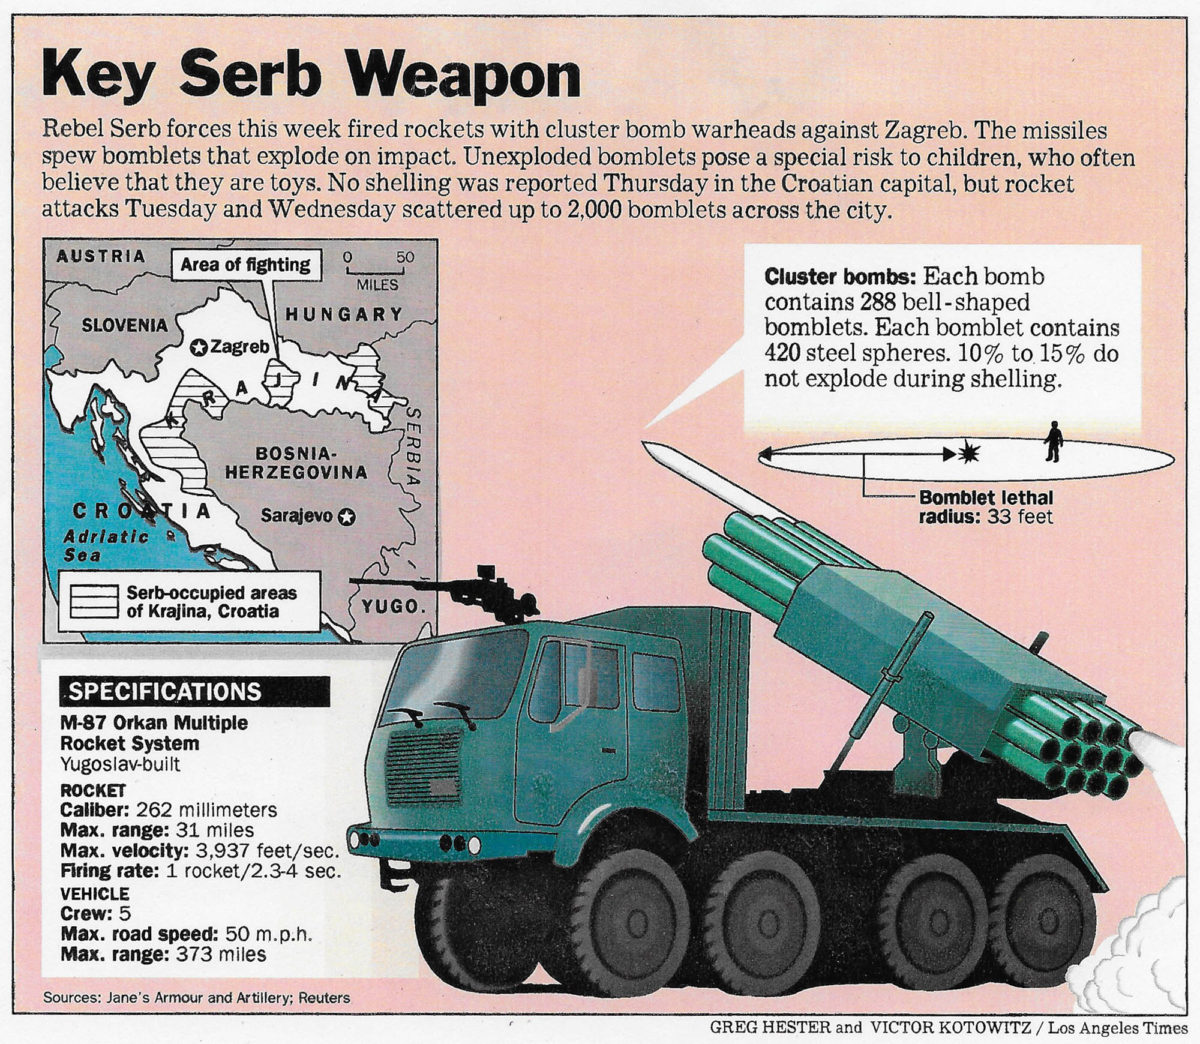 Serbian weaponry infographic for the Los Angeles Times